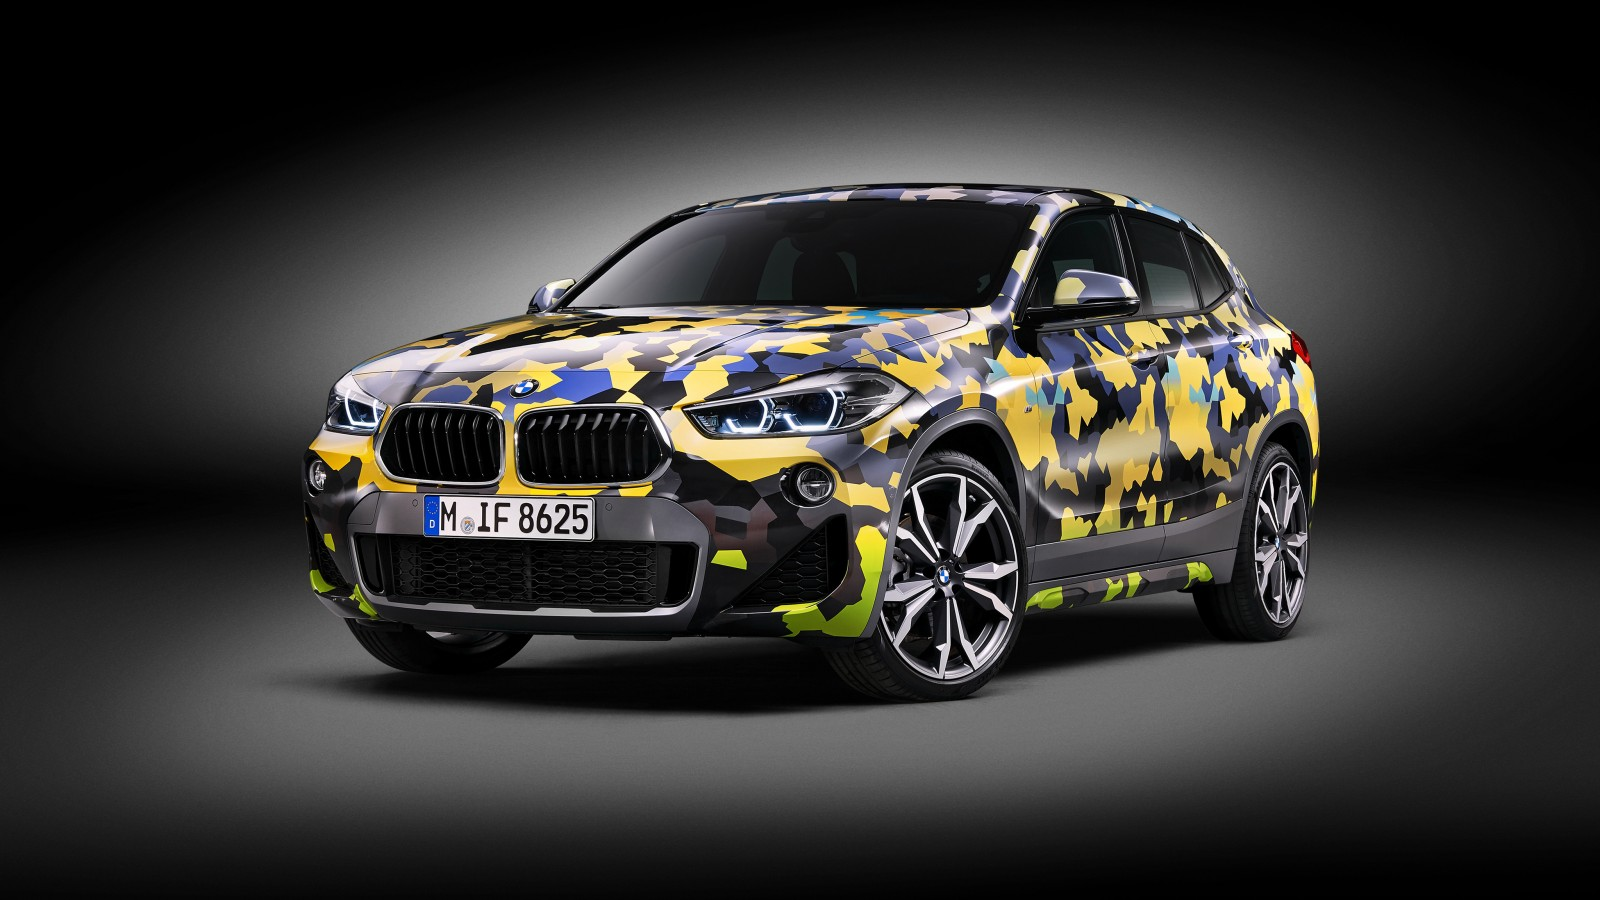 2018 Bmw X2 Digital Camo Concept 4k Wallpaper Hd Car Wallpapers Id 10111